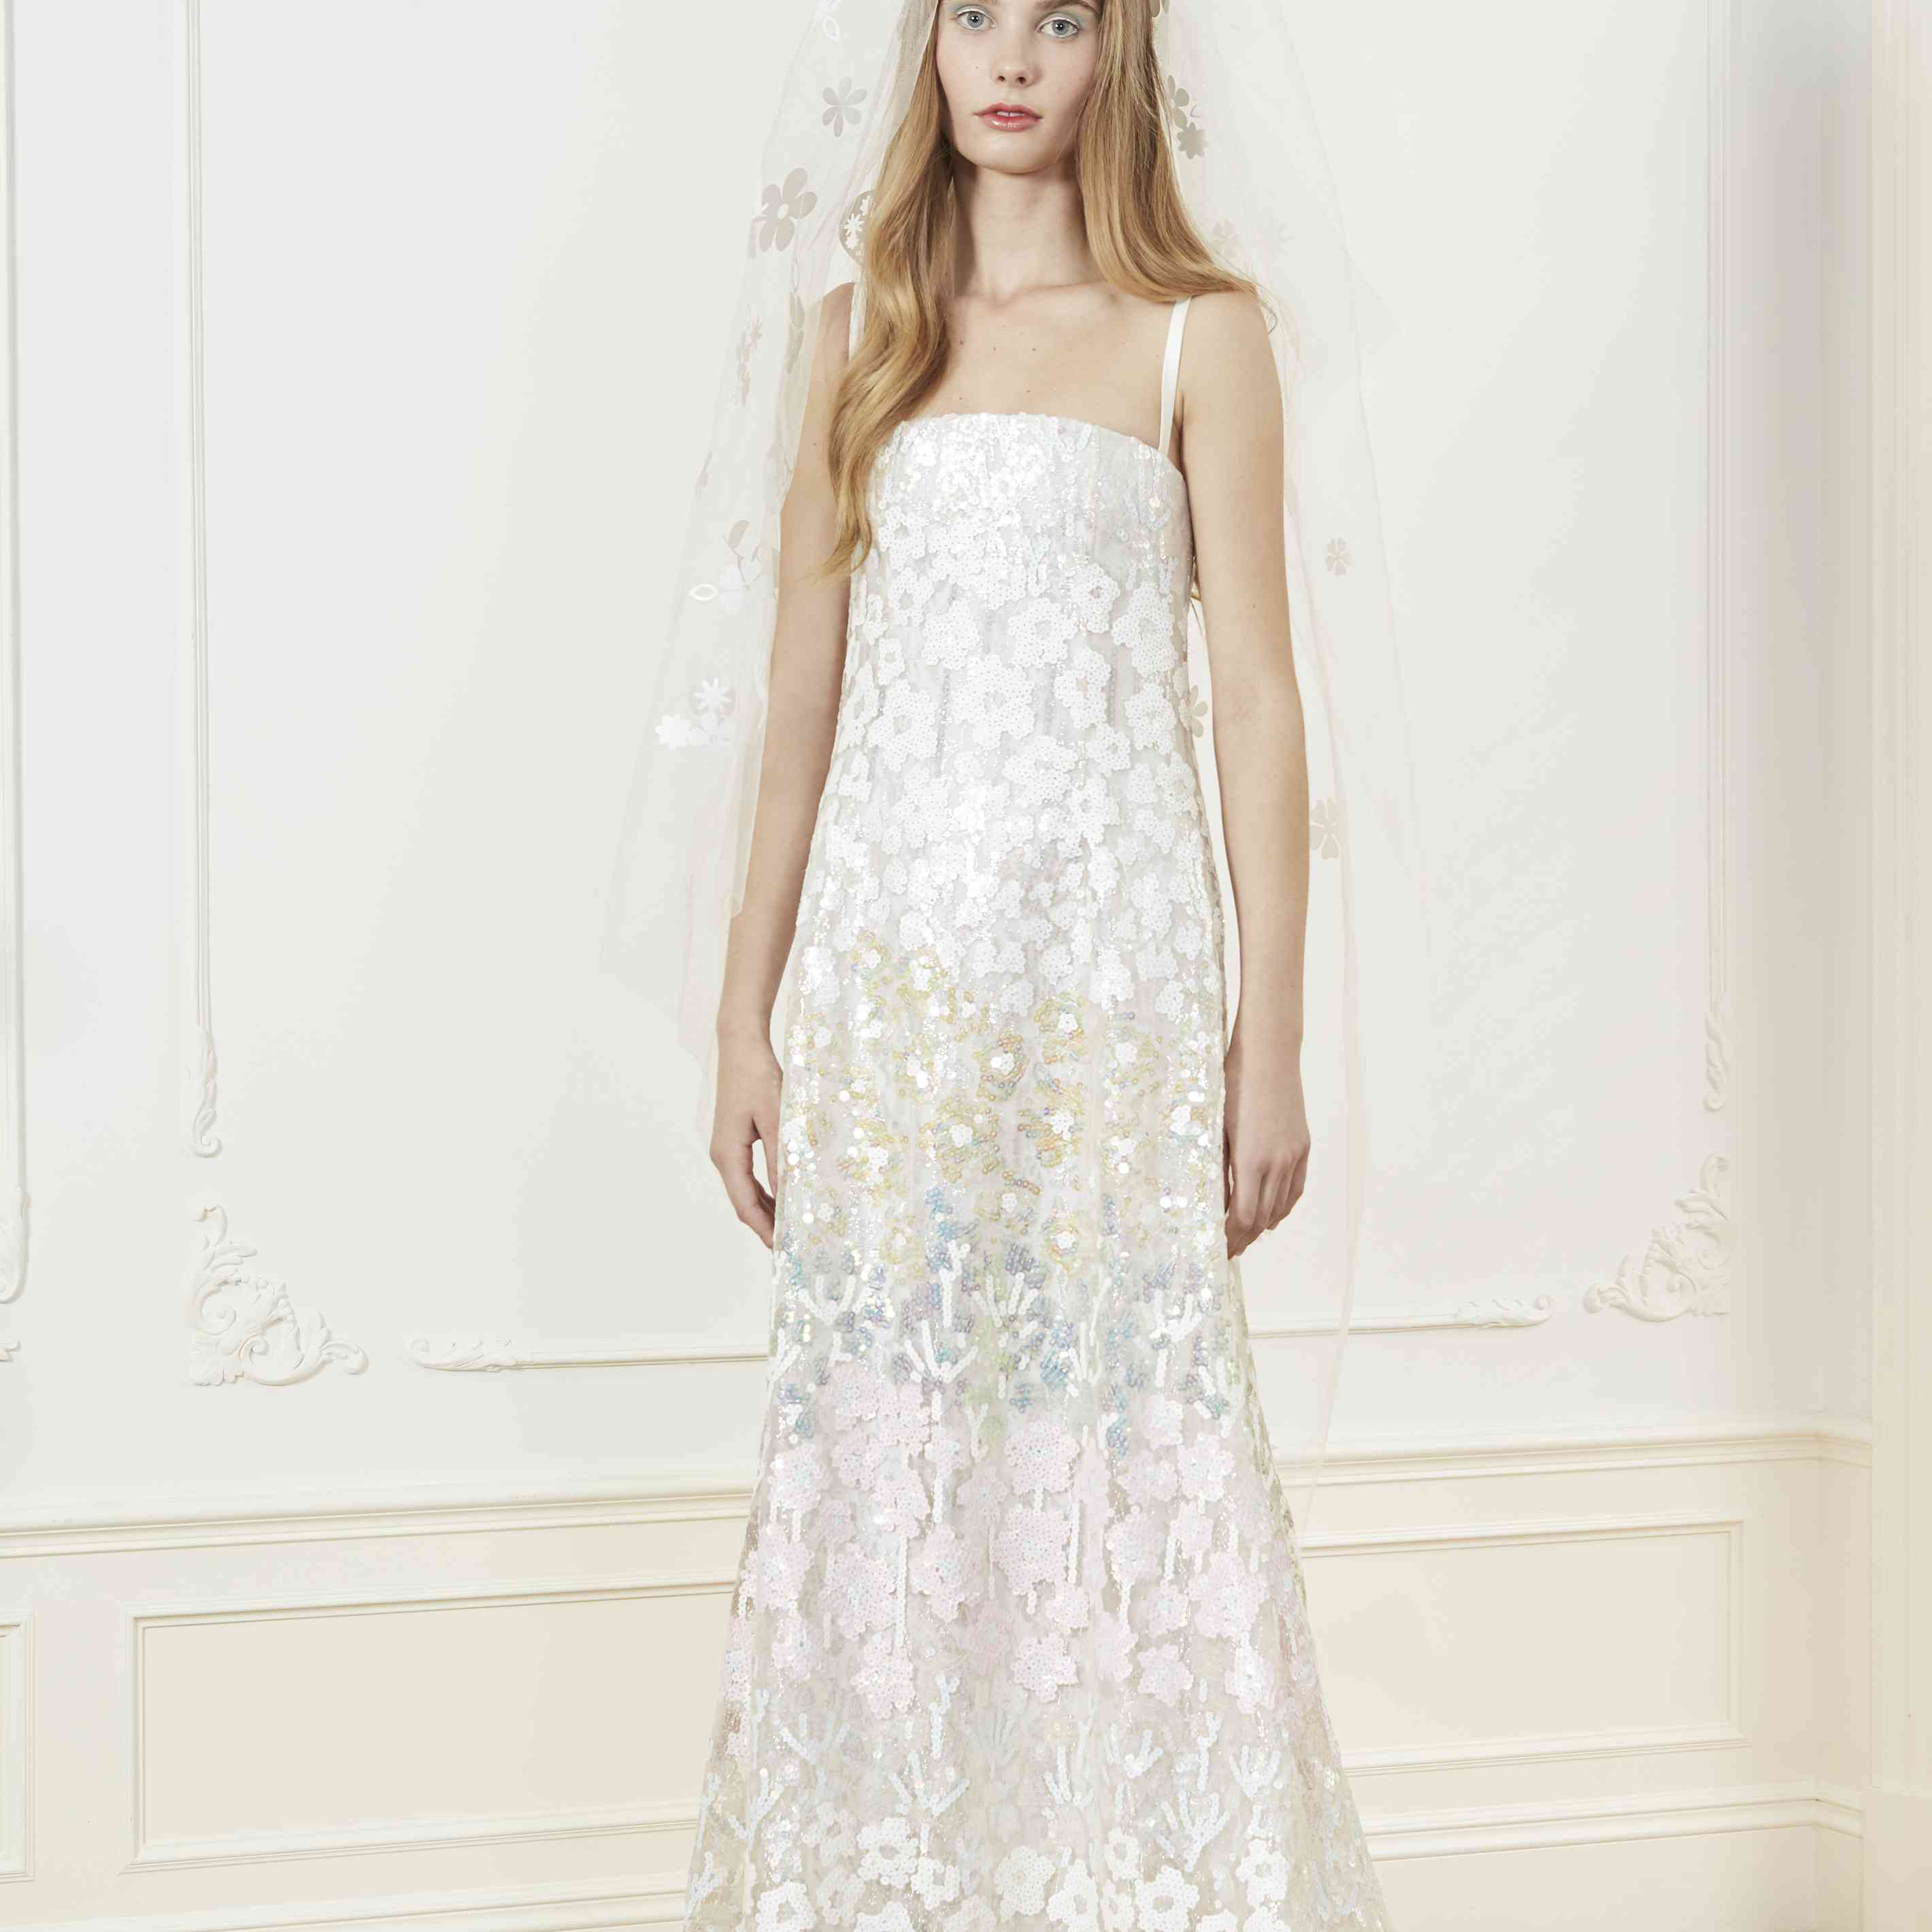 Model in A-line floral wedding dress with slim straps